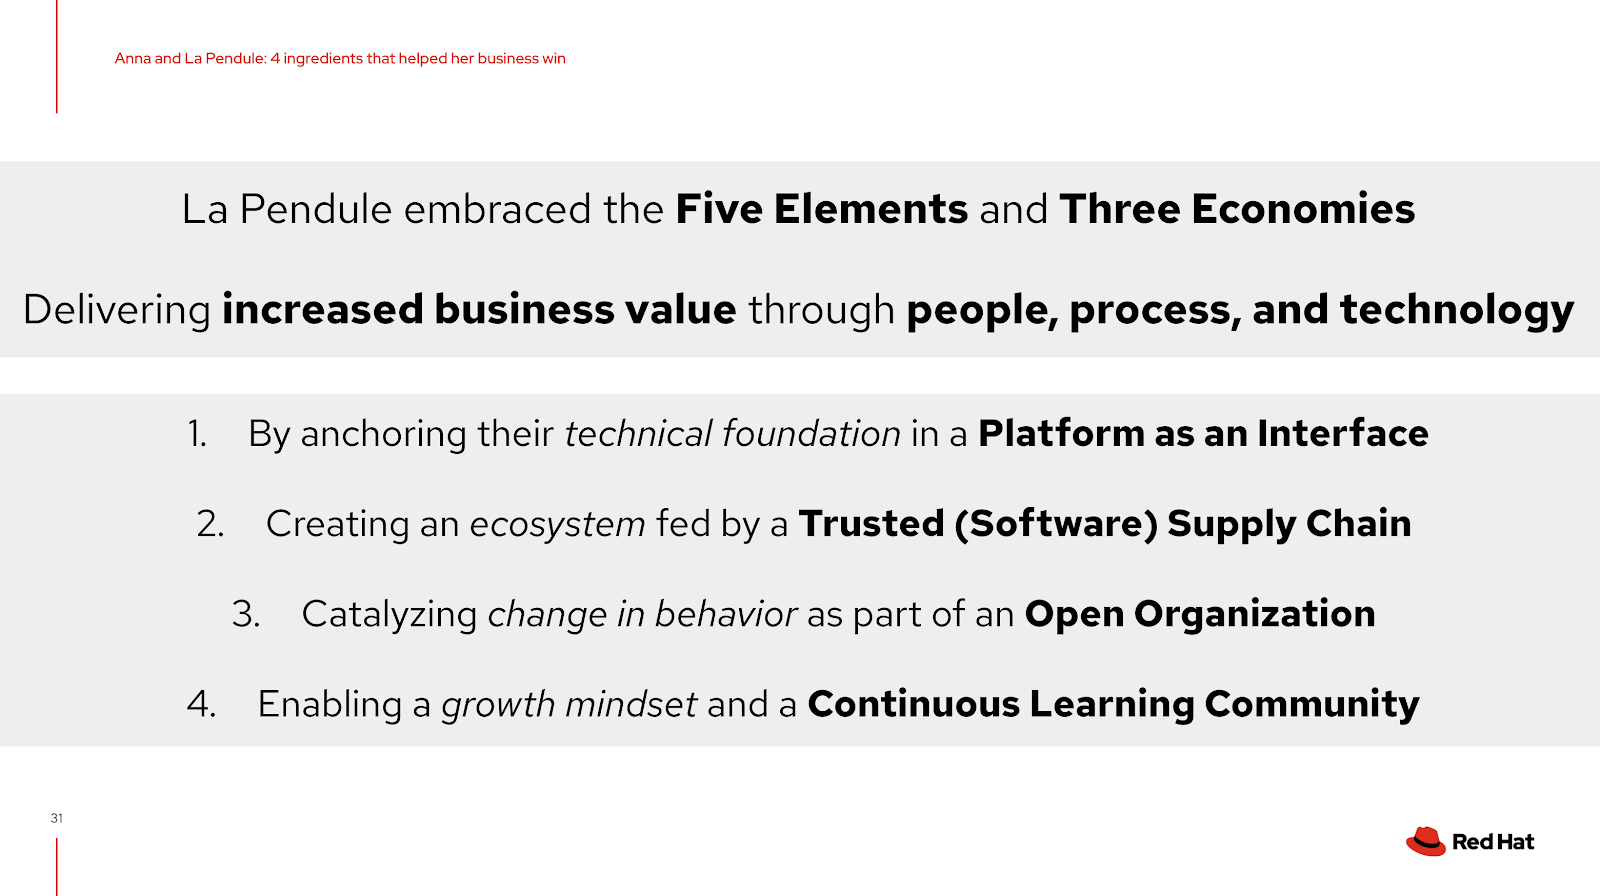 La Pendule embraced the 5 elements and 3 economies delivering increased business value through people, process and technology